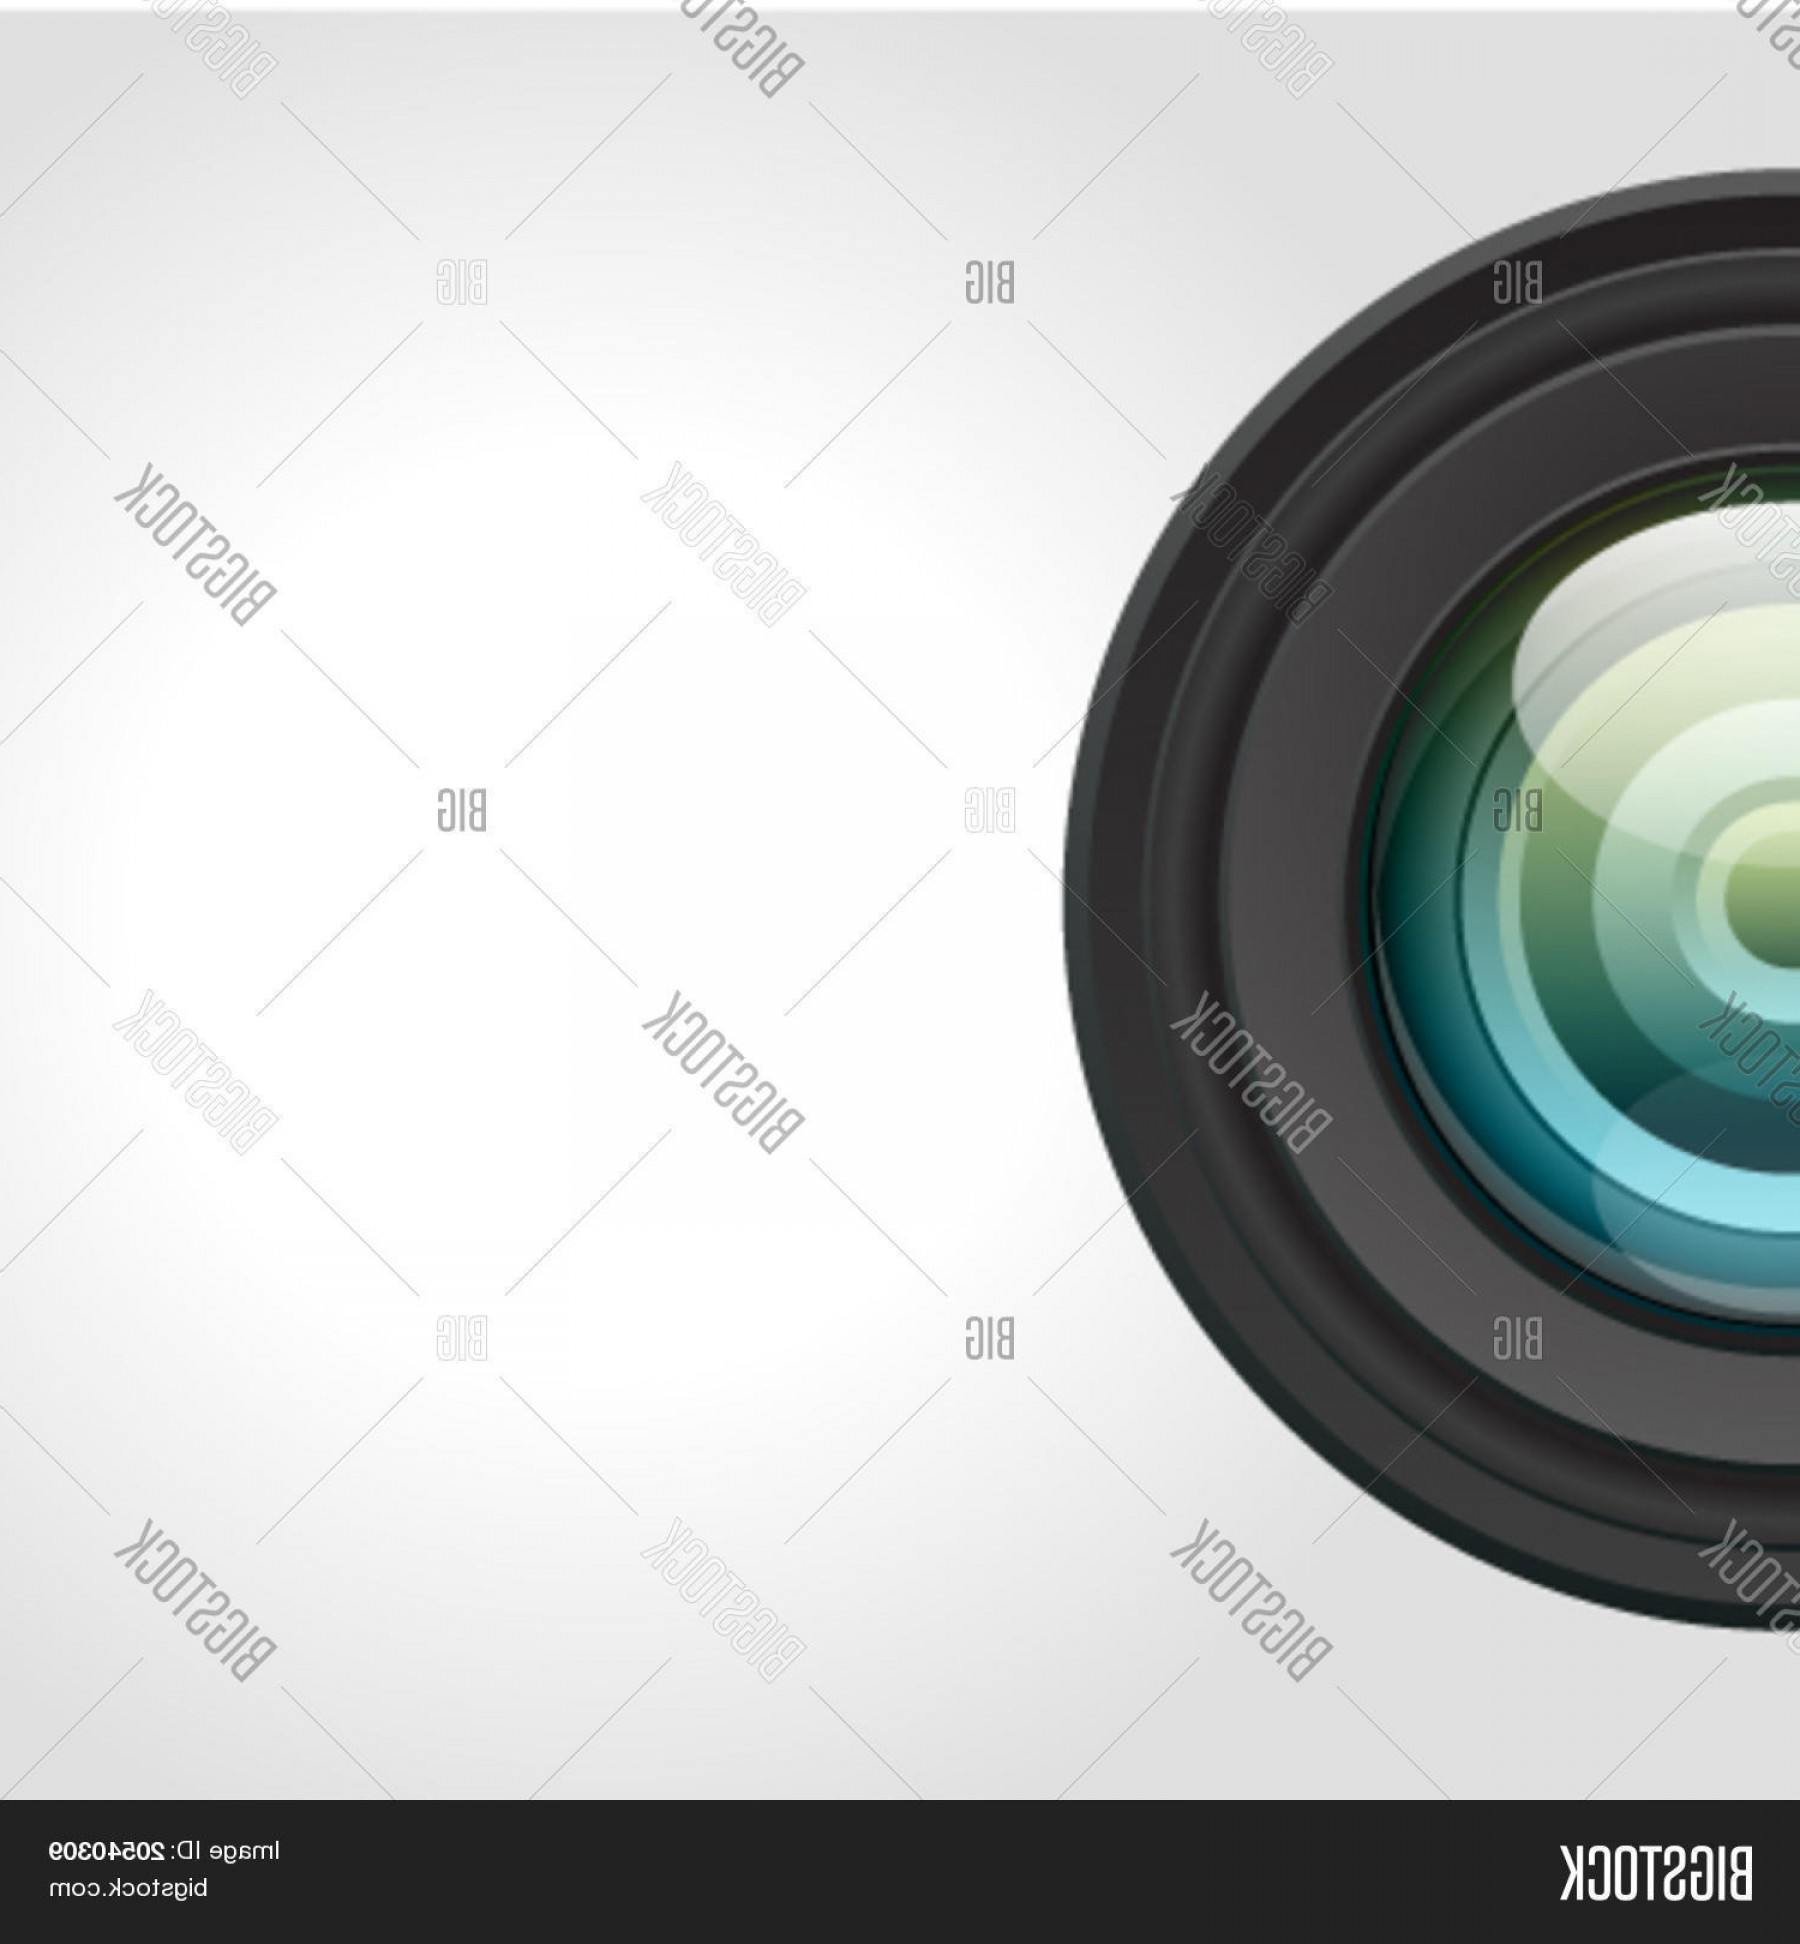 Hires Camera Lens Vector: Camera Lens Vector Background Eps